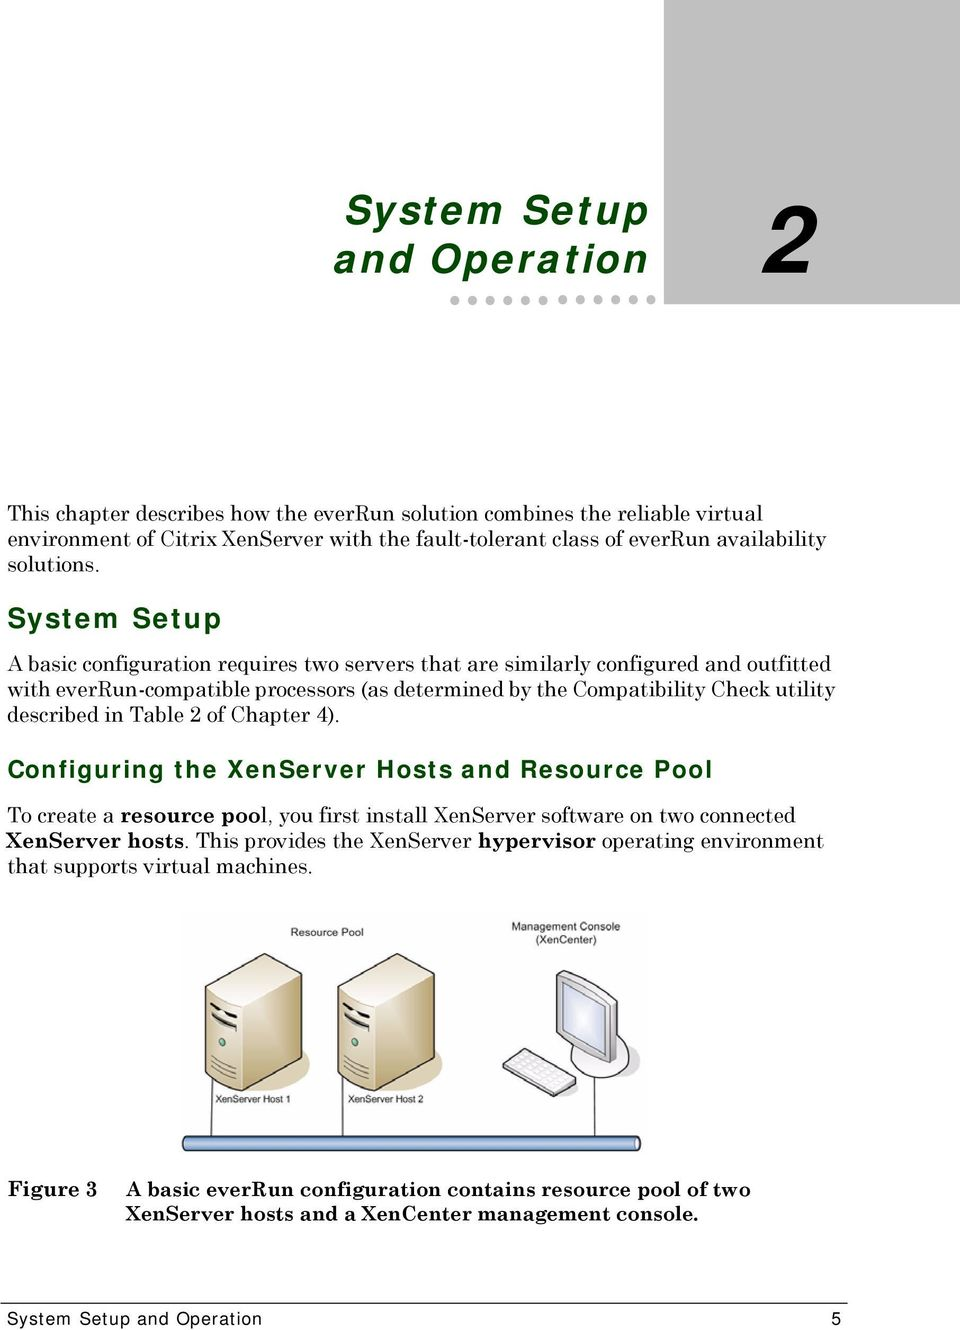 System Setup A basic configuration requires two servers that are similarly configured and outfitted with everrun-compatible processors (as determined by the Compatibility Check utility described in